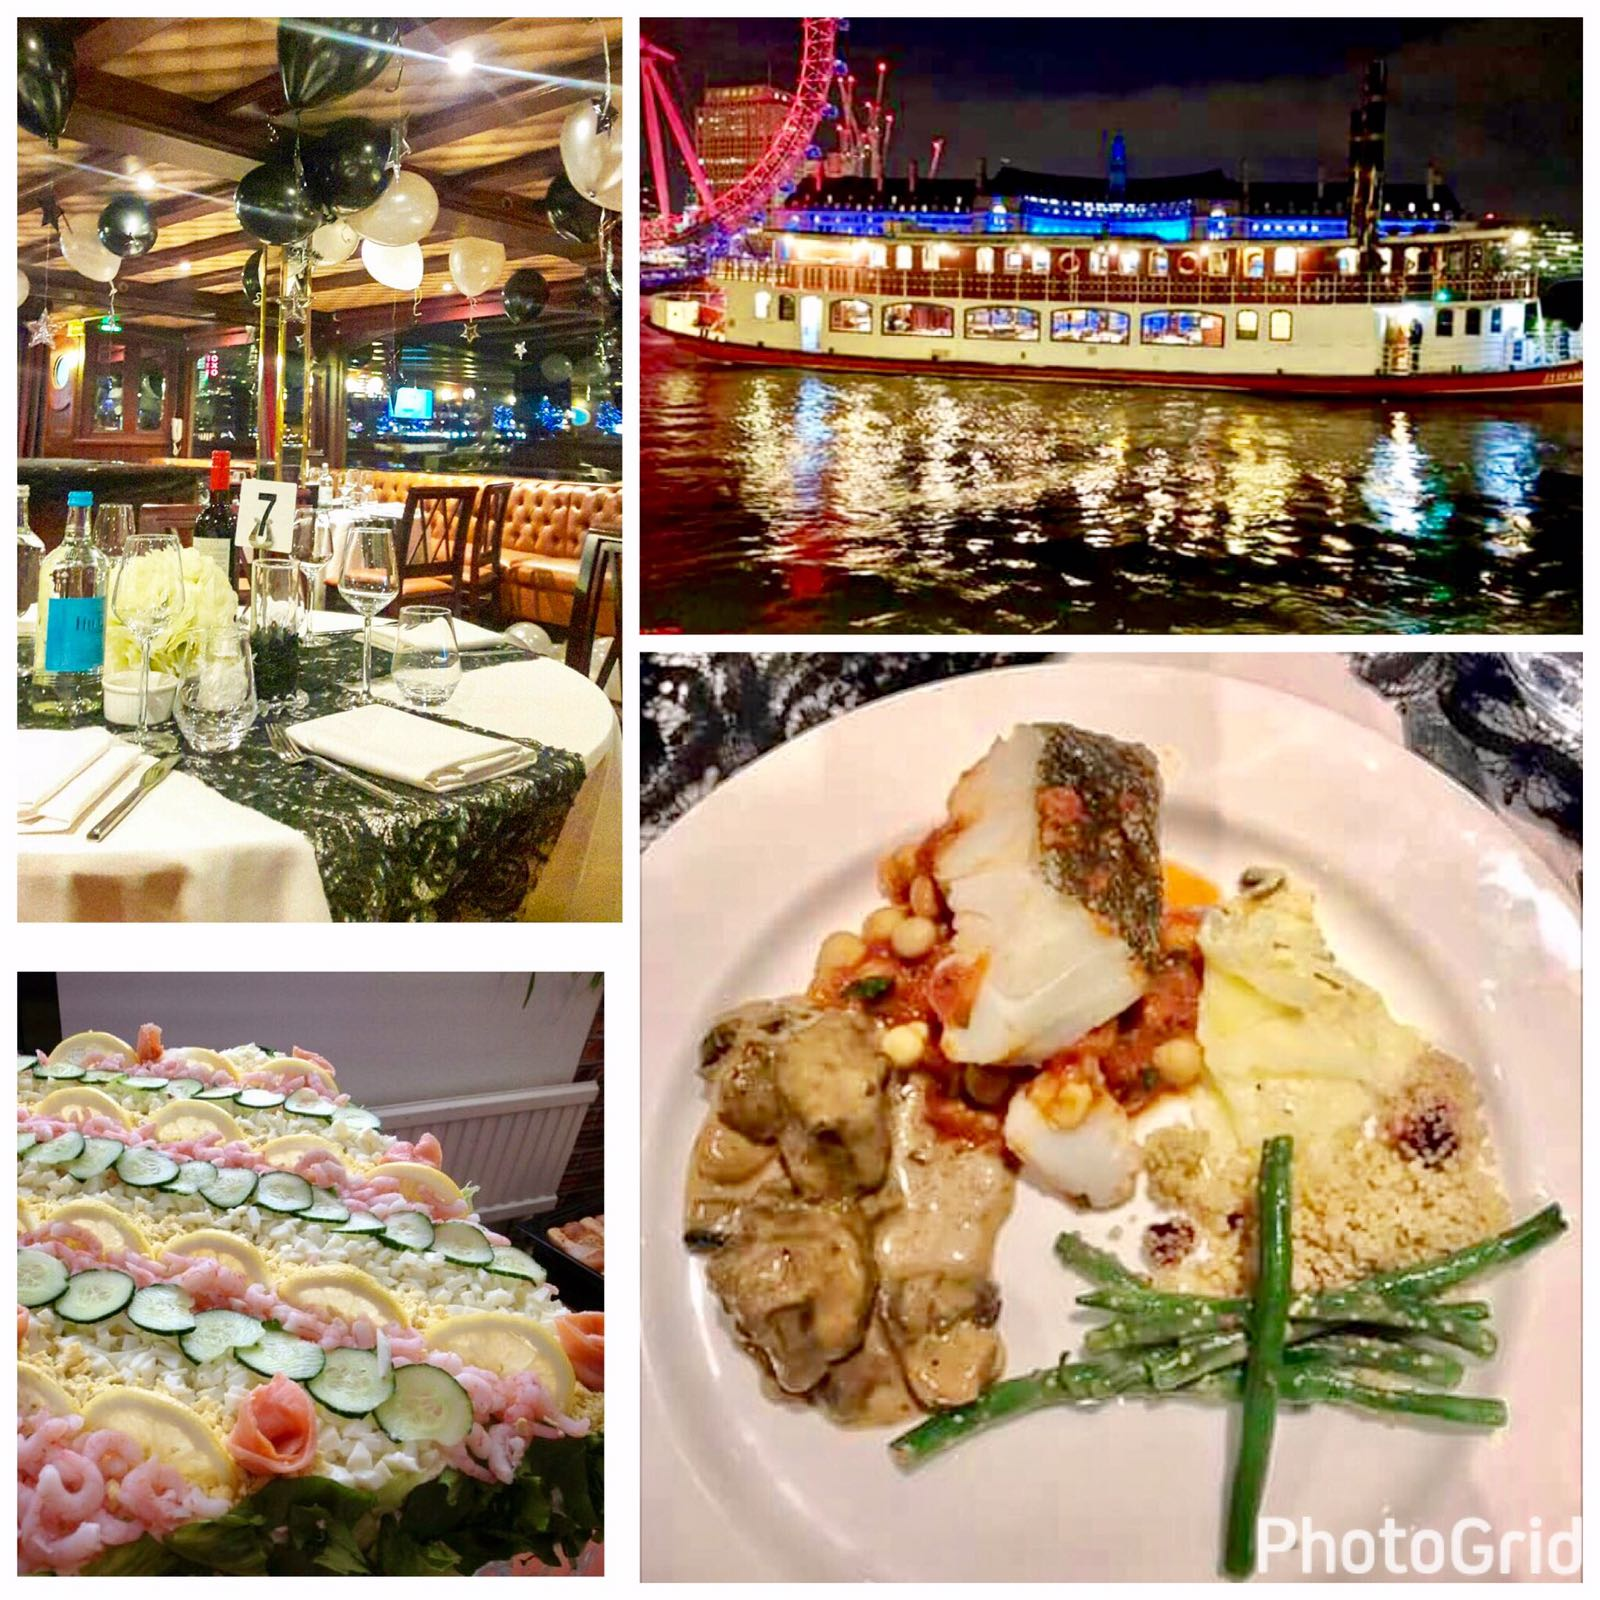 Continental Buffet Dinner- The Elizabethan, Thames Luxury Charters, London